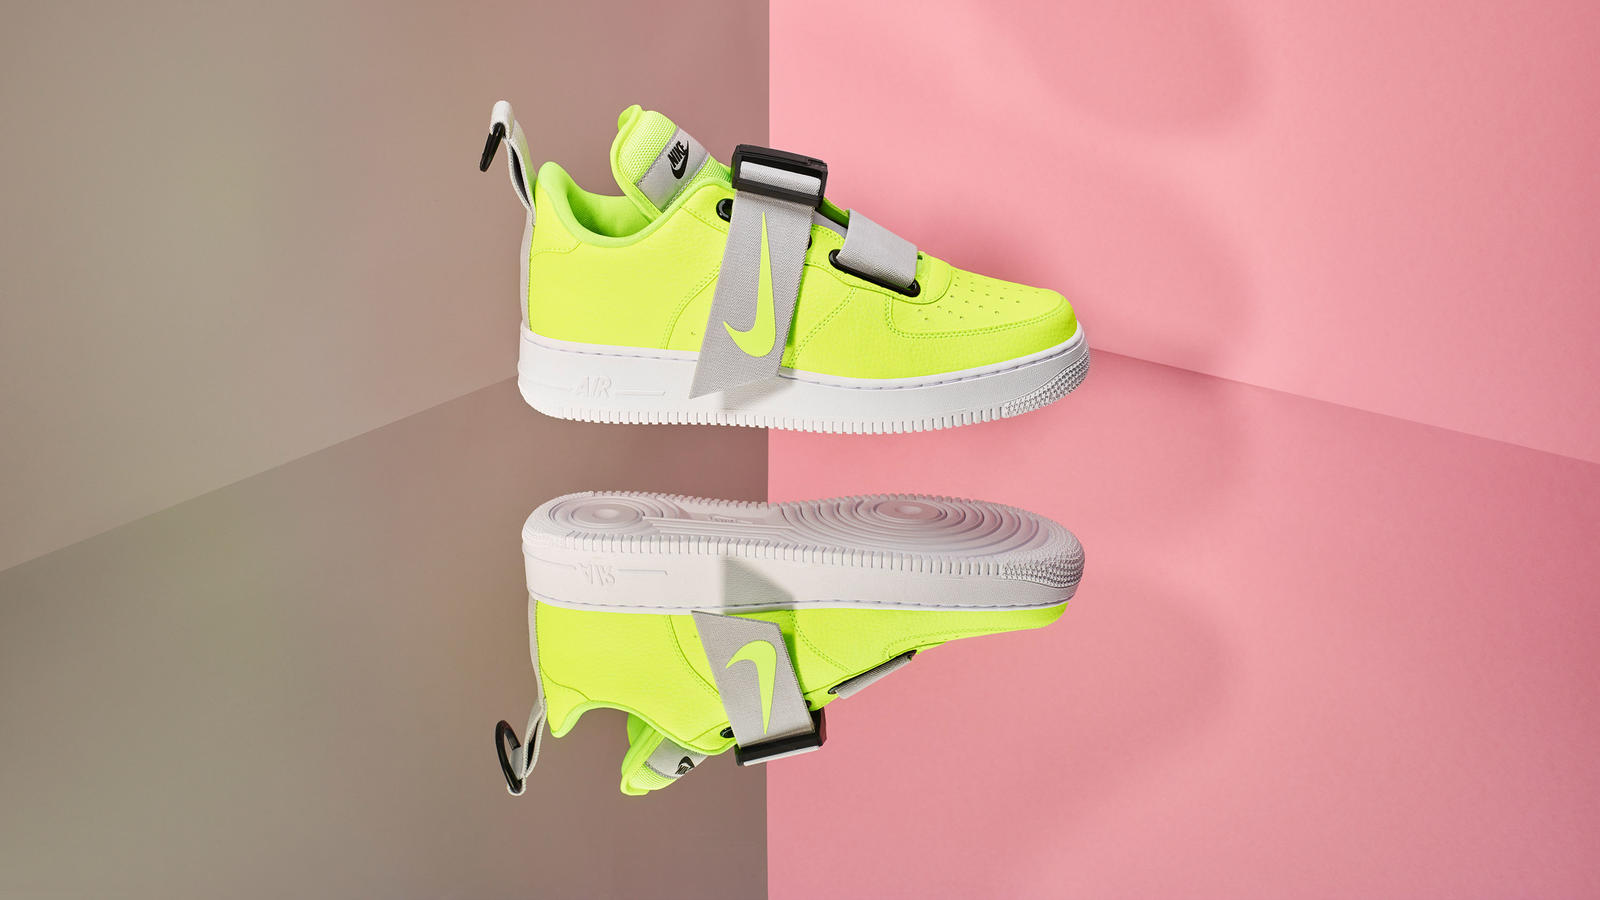 huge discount 17d4a 29bb2 Aside from switching up the fabrics, AF-1 crossovers also allow for  aesthetically bold moves. Later this year Nike is releasing the Air Force 1   Utility .